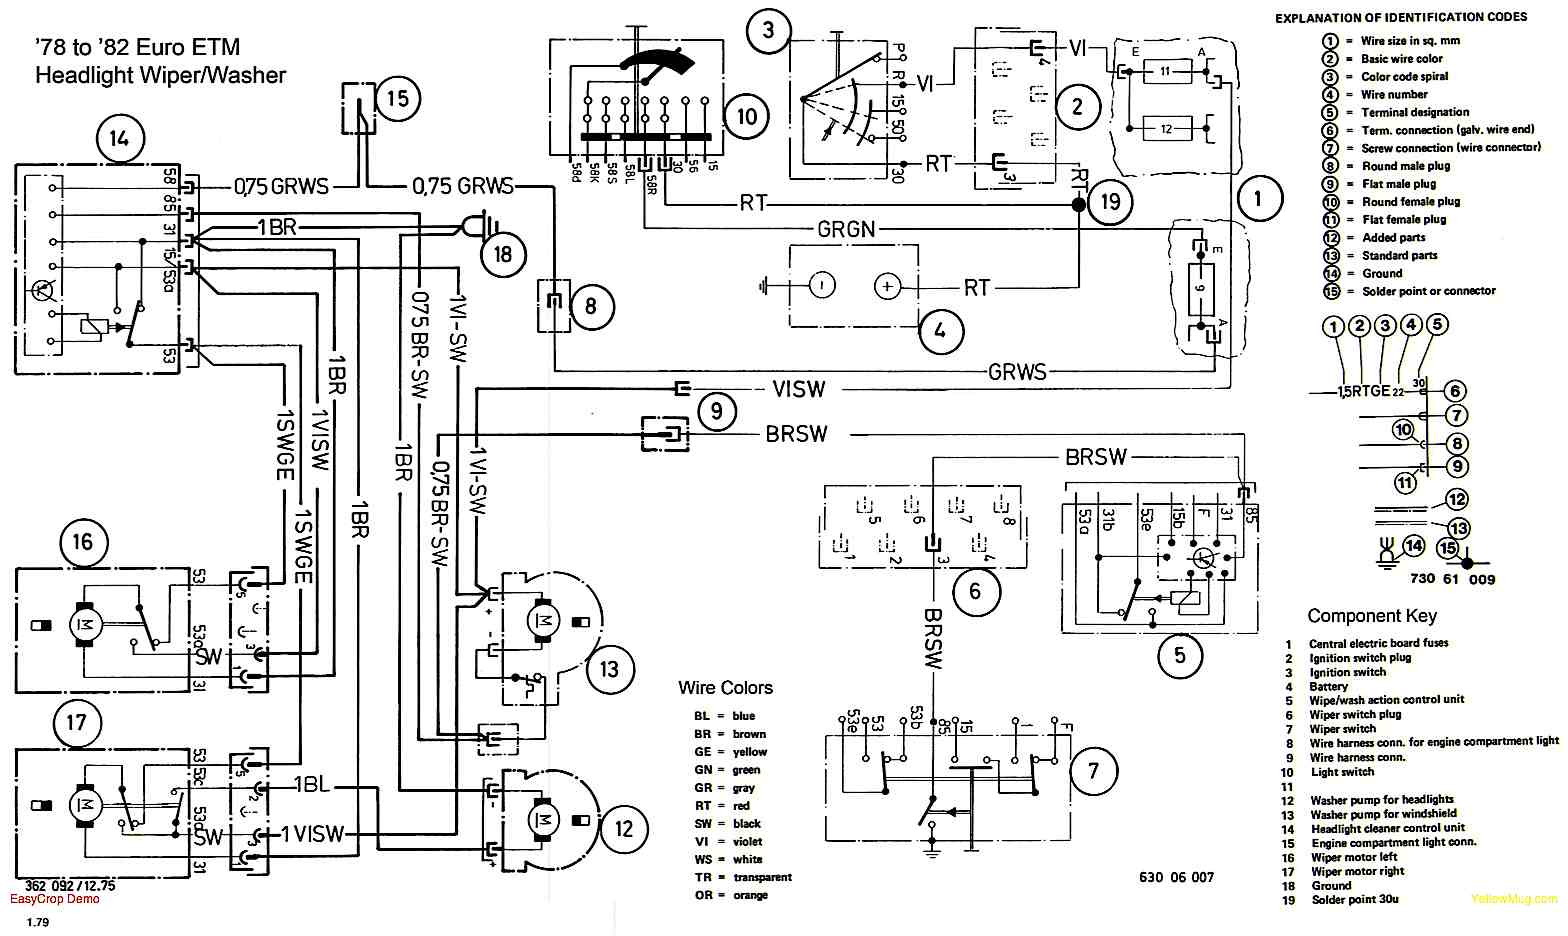 1997 Bmw 740il Engine Diagram in addition 1998 Bmw 740i Belt Diagram in addition 1995 Bmw 525i Relay Diagram further 2001 Mazda 626 Fuel Filter Location in addition 99 Audi A4 Engine Diagram. on bmw 740i engine diagram